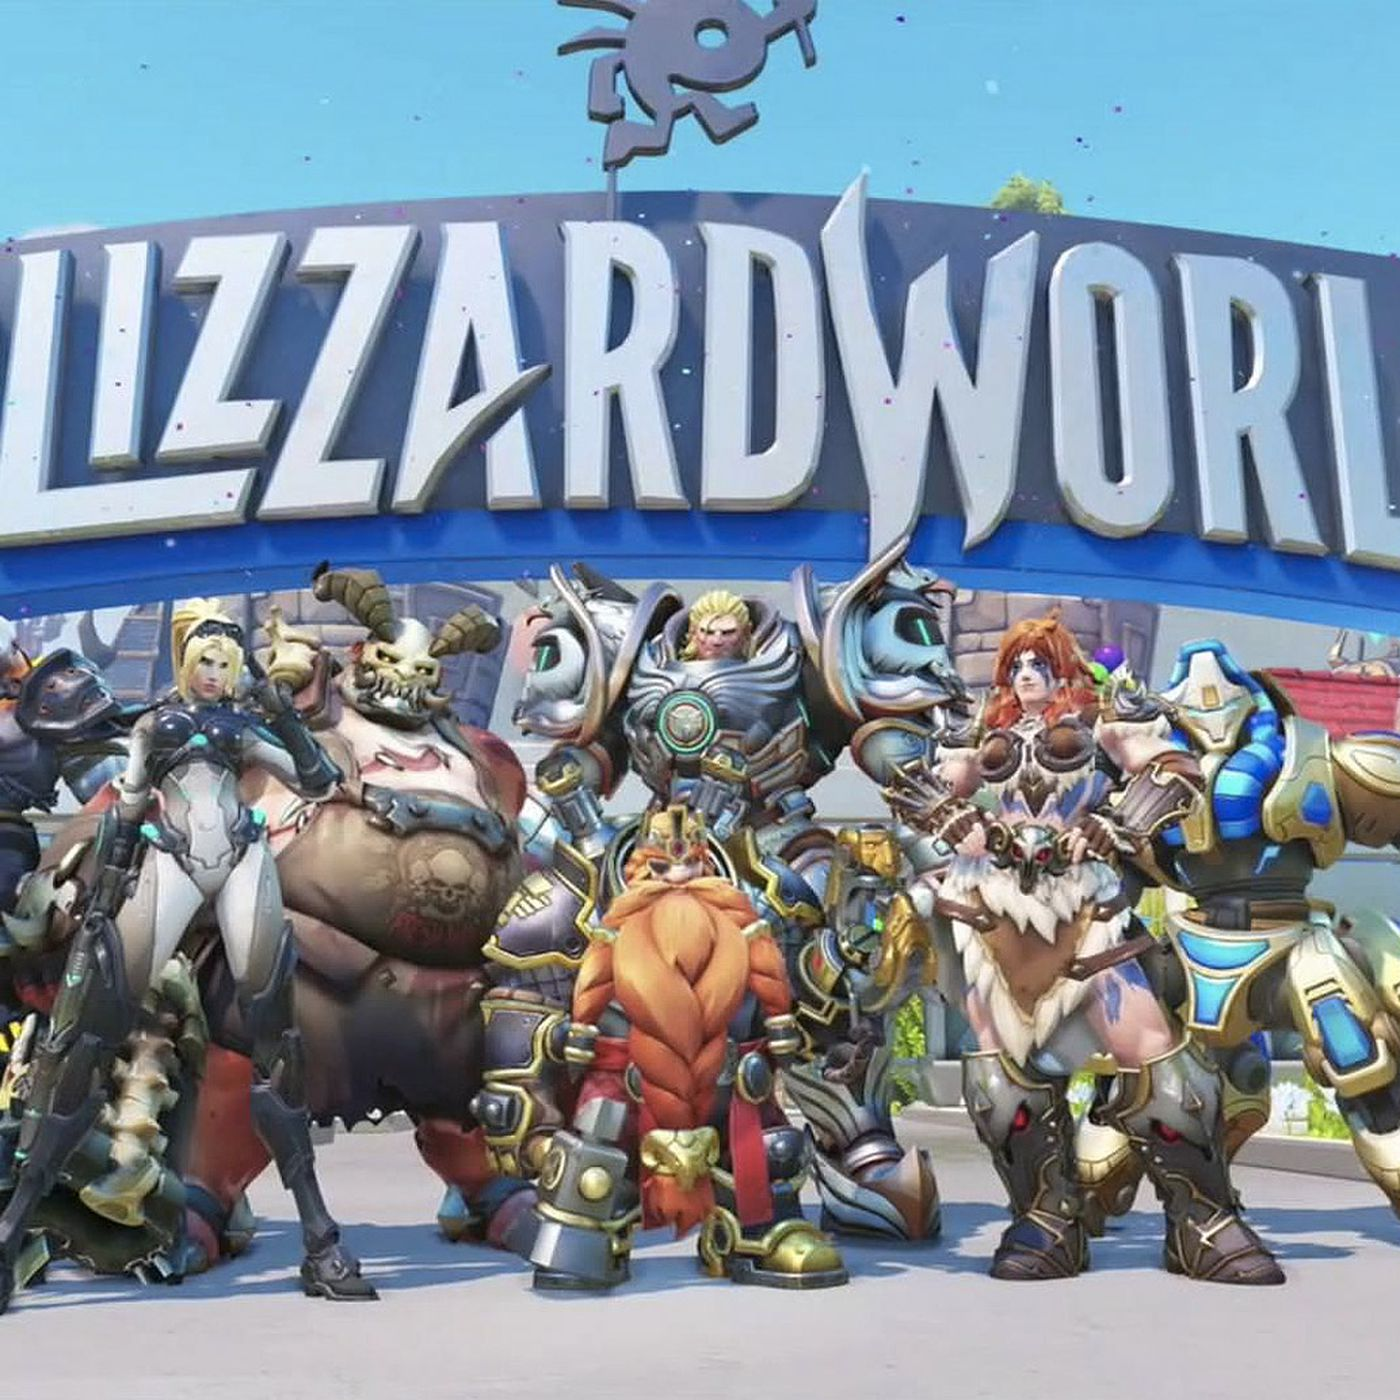 overwatch s blizzard world update is here with rad new skins and